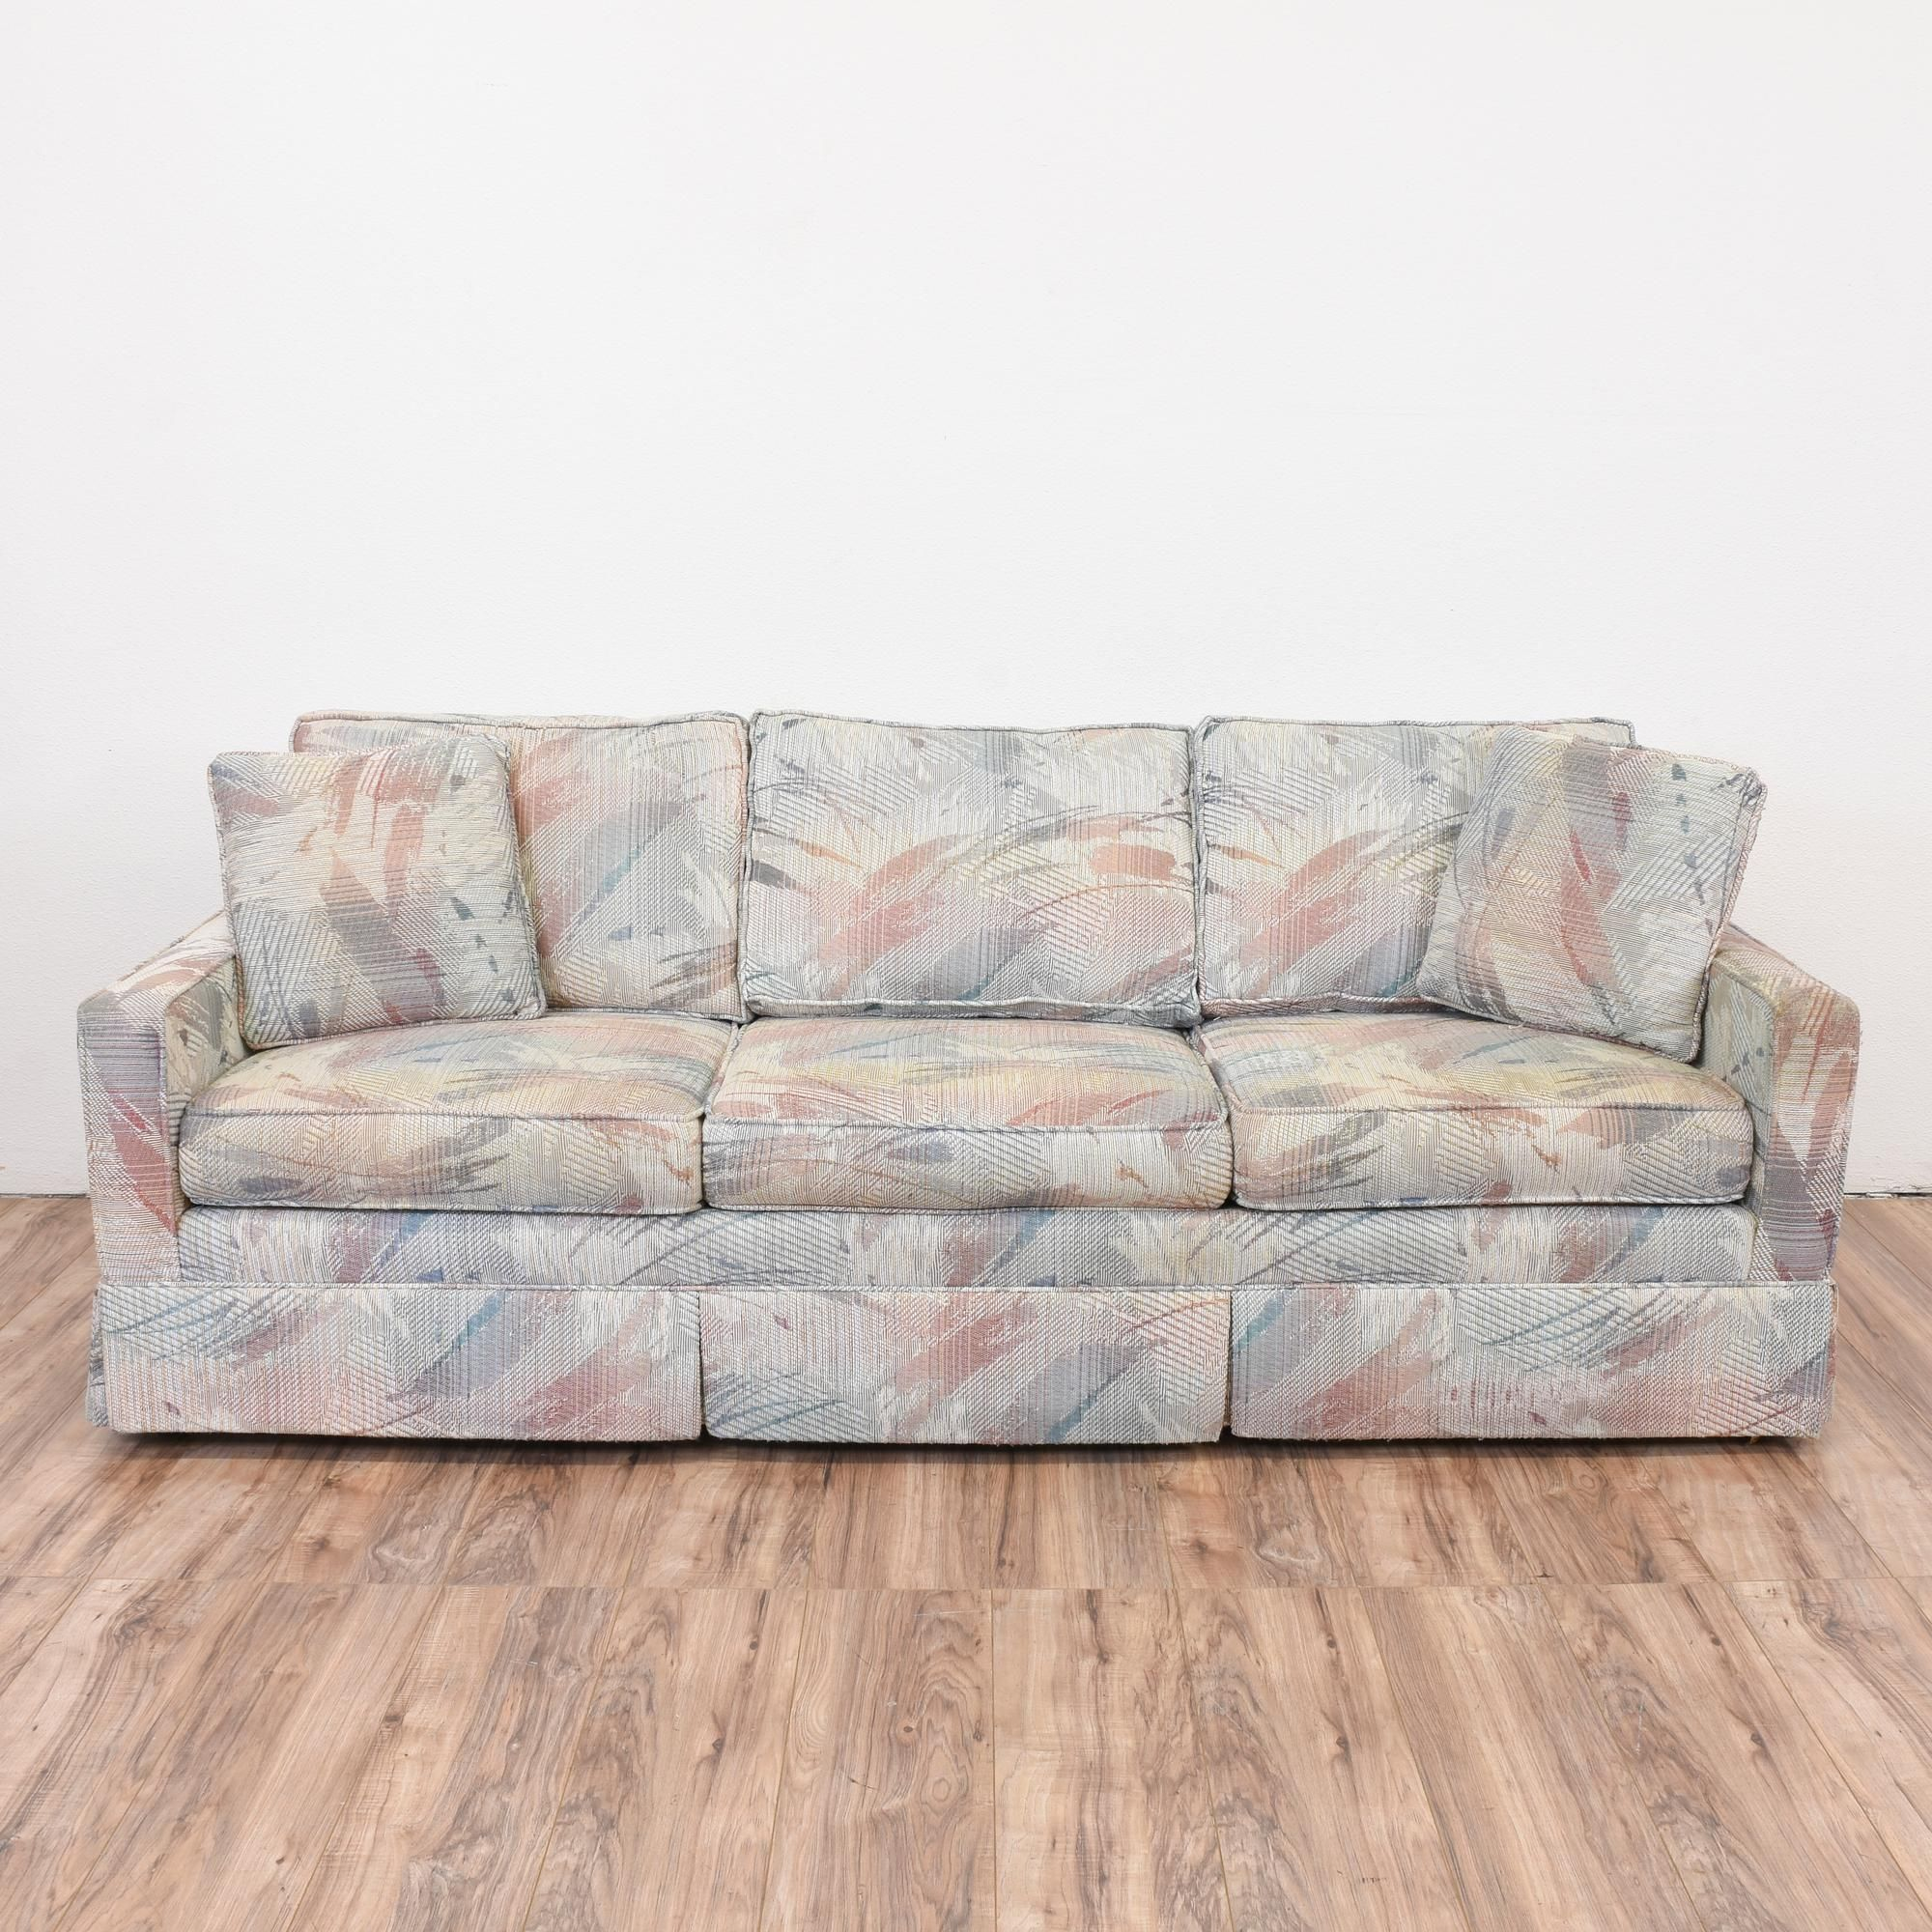 This Retro Sofa Is Upholstered In A Durable Light Gray Fabric With A Pastel  Pink,